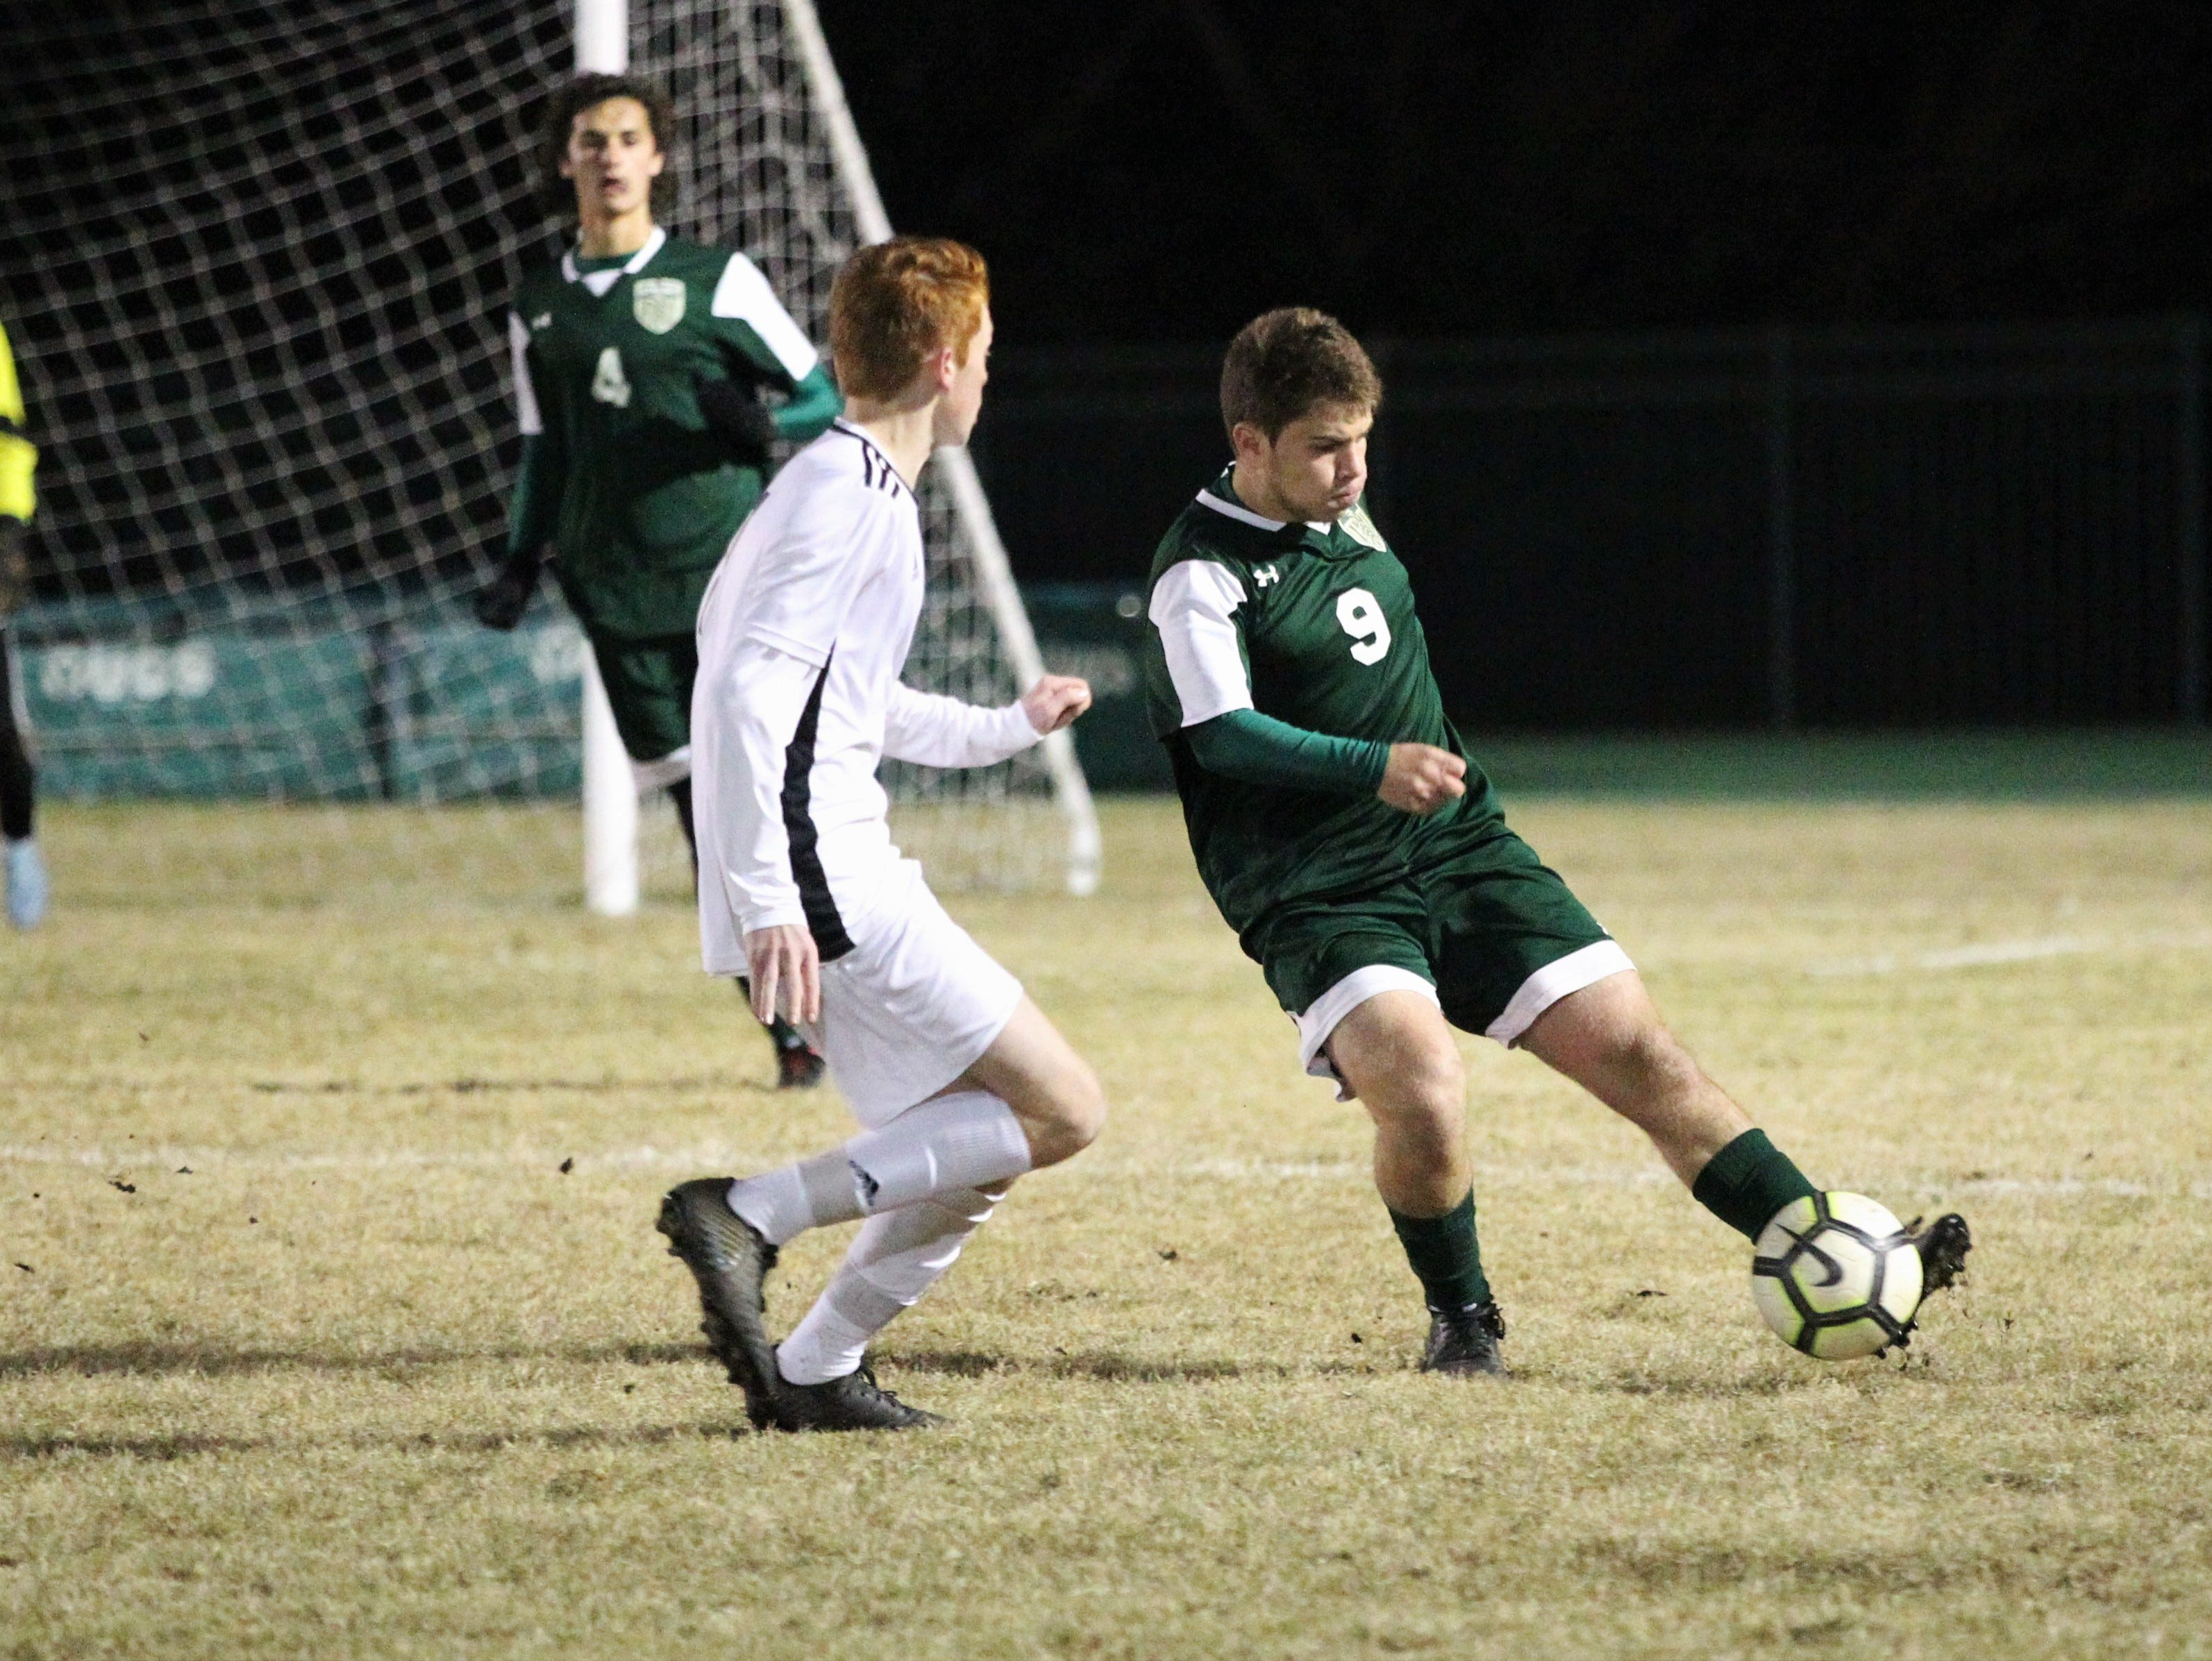 Lincoln's Sean Yearwood sends a clearance pass upfield as Chiles' boys soccer team beat Lincoln 1-0 in a District 2-4A semifinal on Jan. 30, 2019.